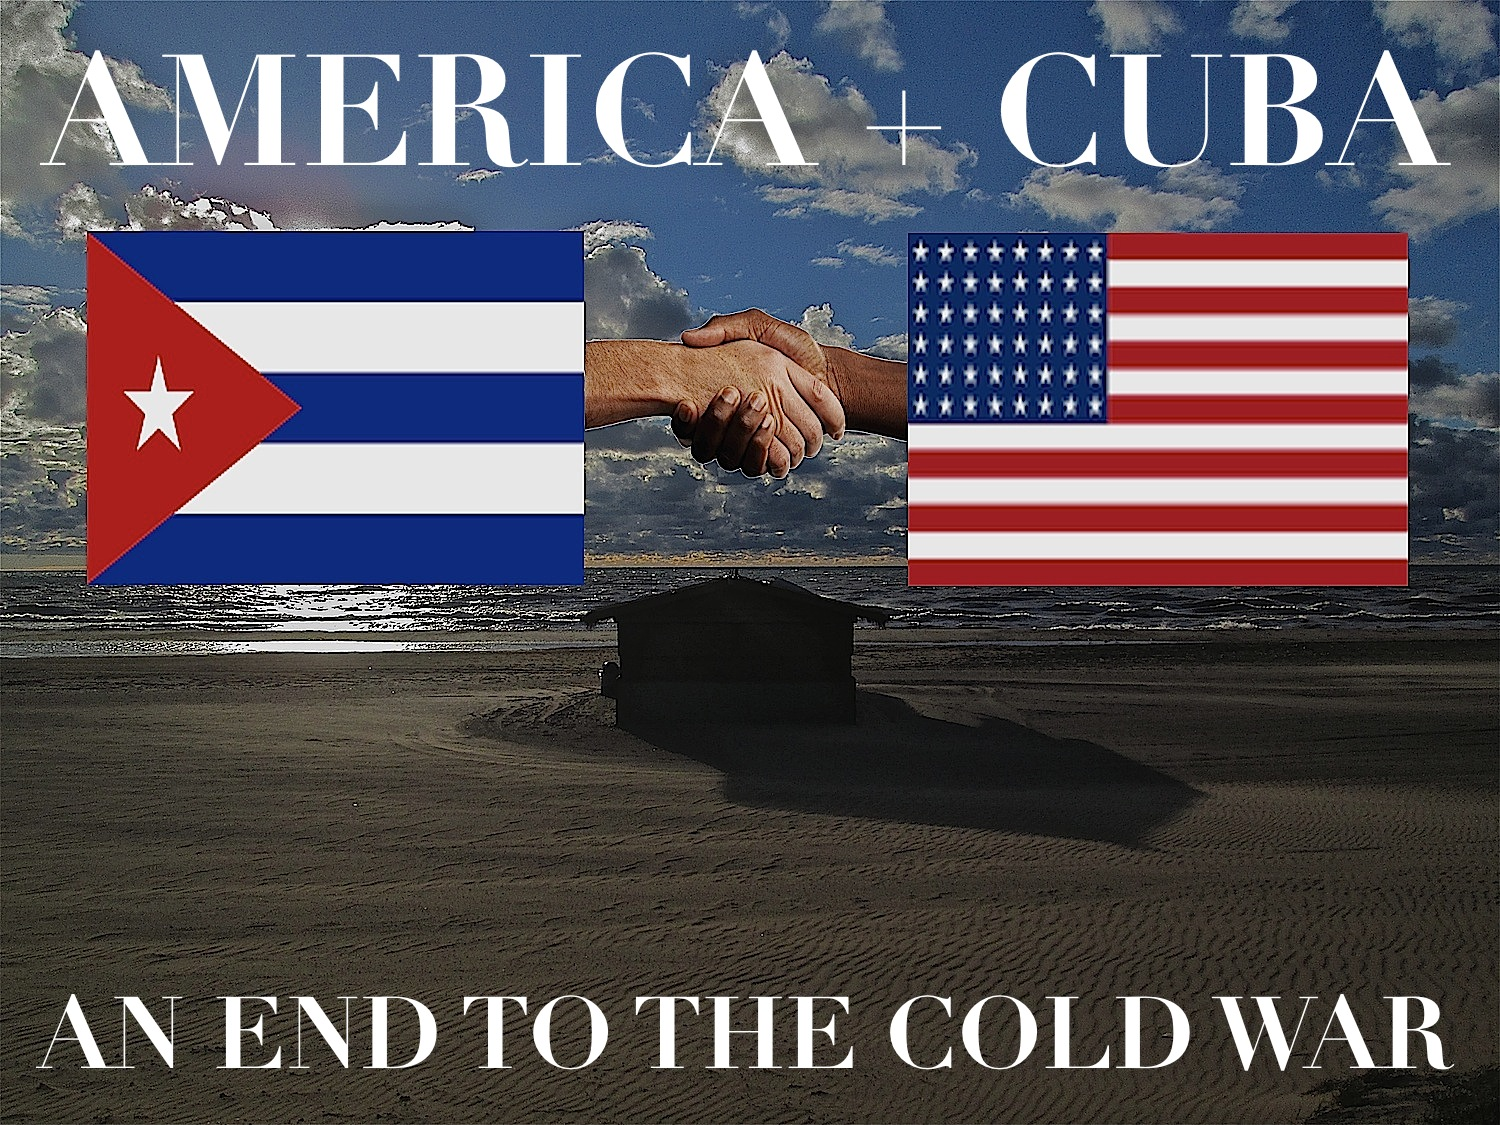 END OF CUBAN COLD WAR